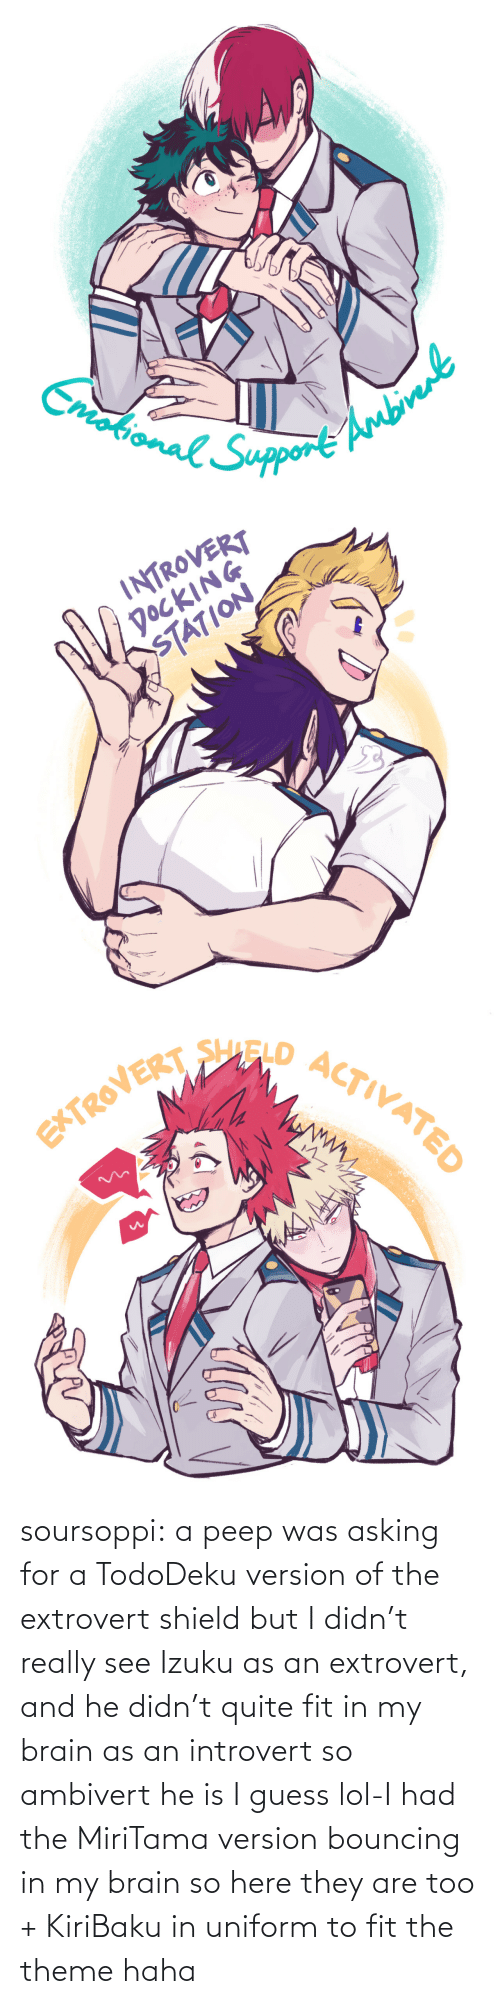 Asking For: soursoppi:  a peep was asking for a TodoDeku version of the extrovert shield but I didn't really see Izuku as an extrovert, and he didn't quite fit in my brain as an introvert so ambivert he is I guess lol-I had the MiriTama version bouncing in my brain so here they are too + KiriBaku in uniform to fit the theme haha